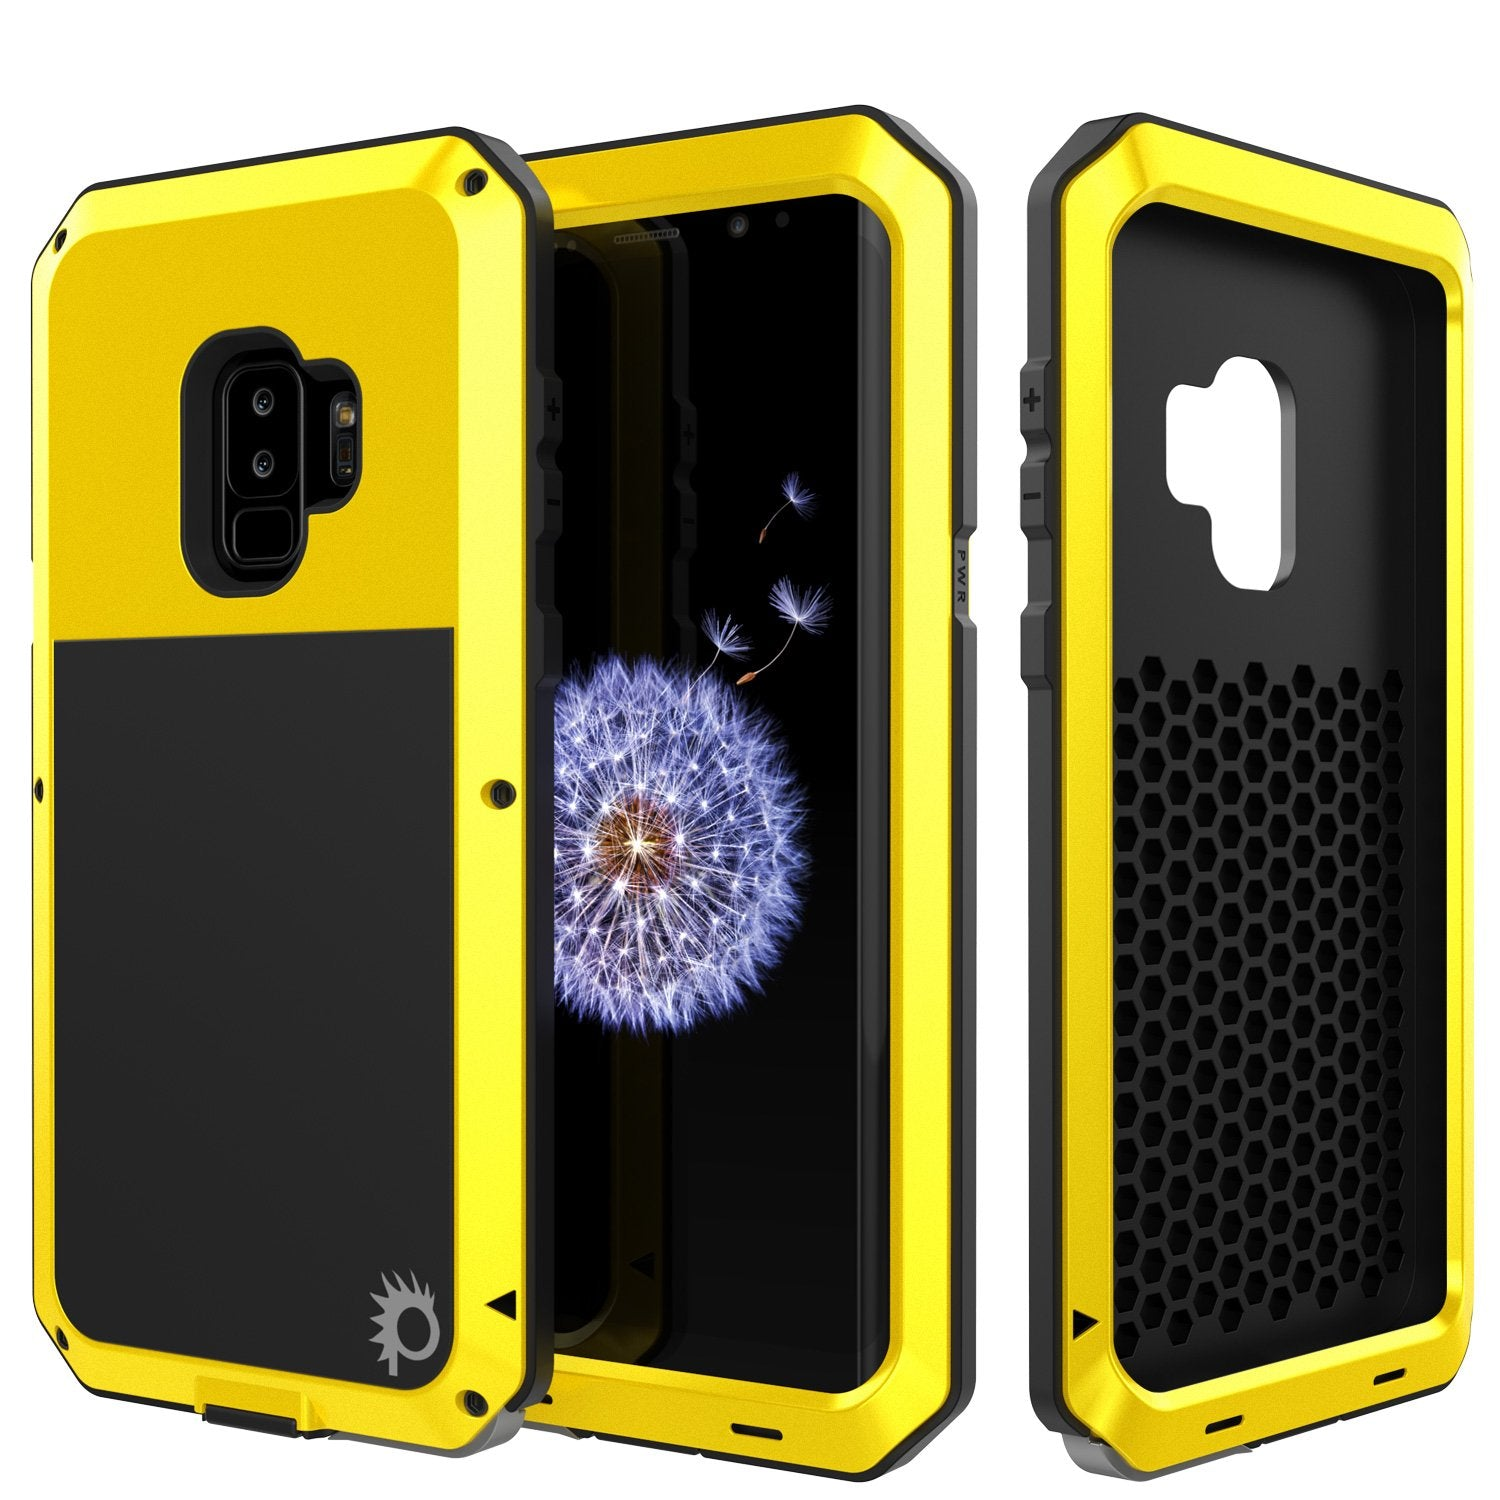 Galaxy S9 Plus Metal Case, Heavy Duty Military Grade Rugged Armor Cover [shock proof] Hybrid Full Body Hard Aluminum & TPU Design [non slip] W/ Prime Drop Protection for Samsung Galaxy S9 Plus [Neon]